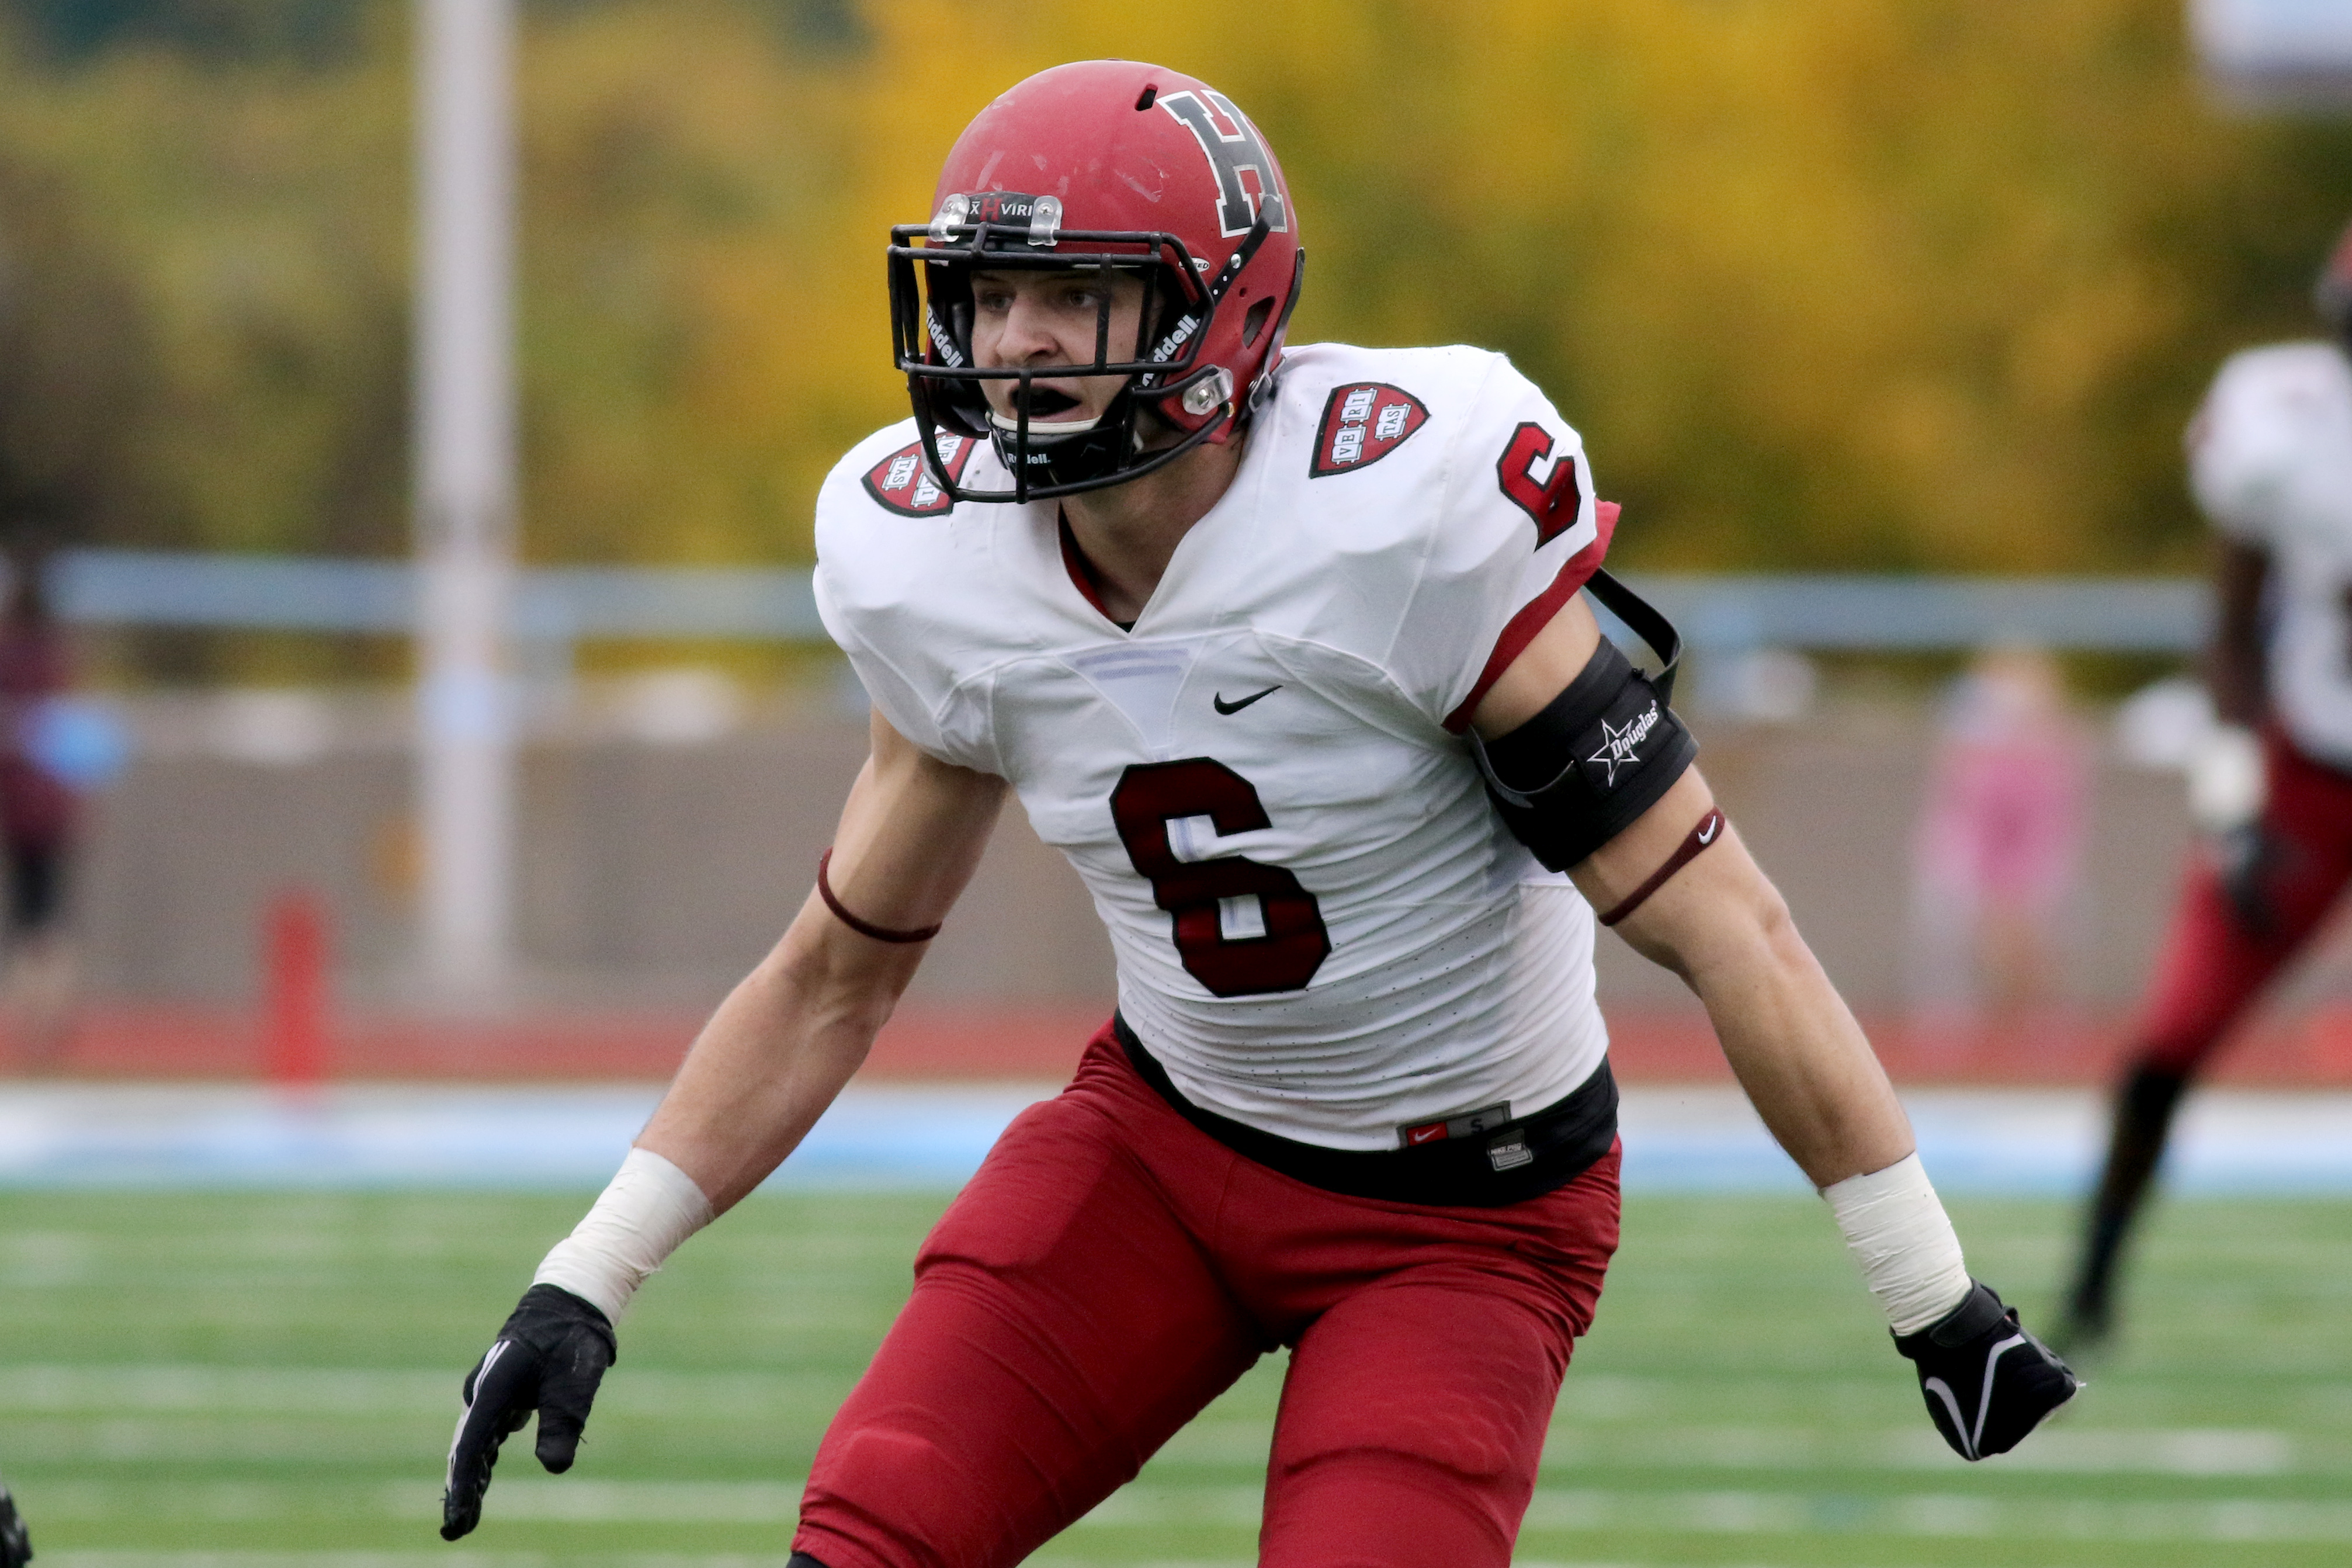 Harvard Crimson's Sean Ahern #6 in action against the Columbia Lions during a college football game on Saturday, November 7, 2015 in Manhattan, NY.  Harvard won 24-16. (AP Photo/Gregory Payan)